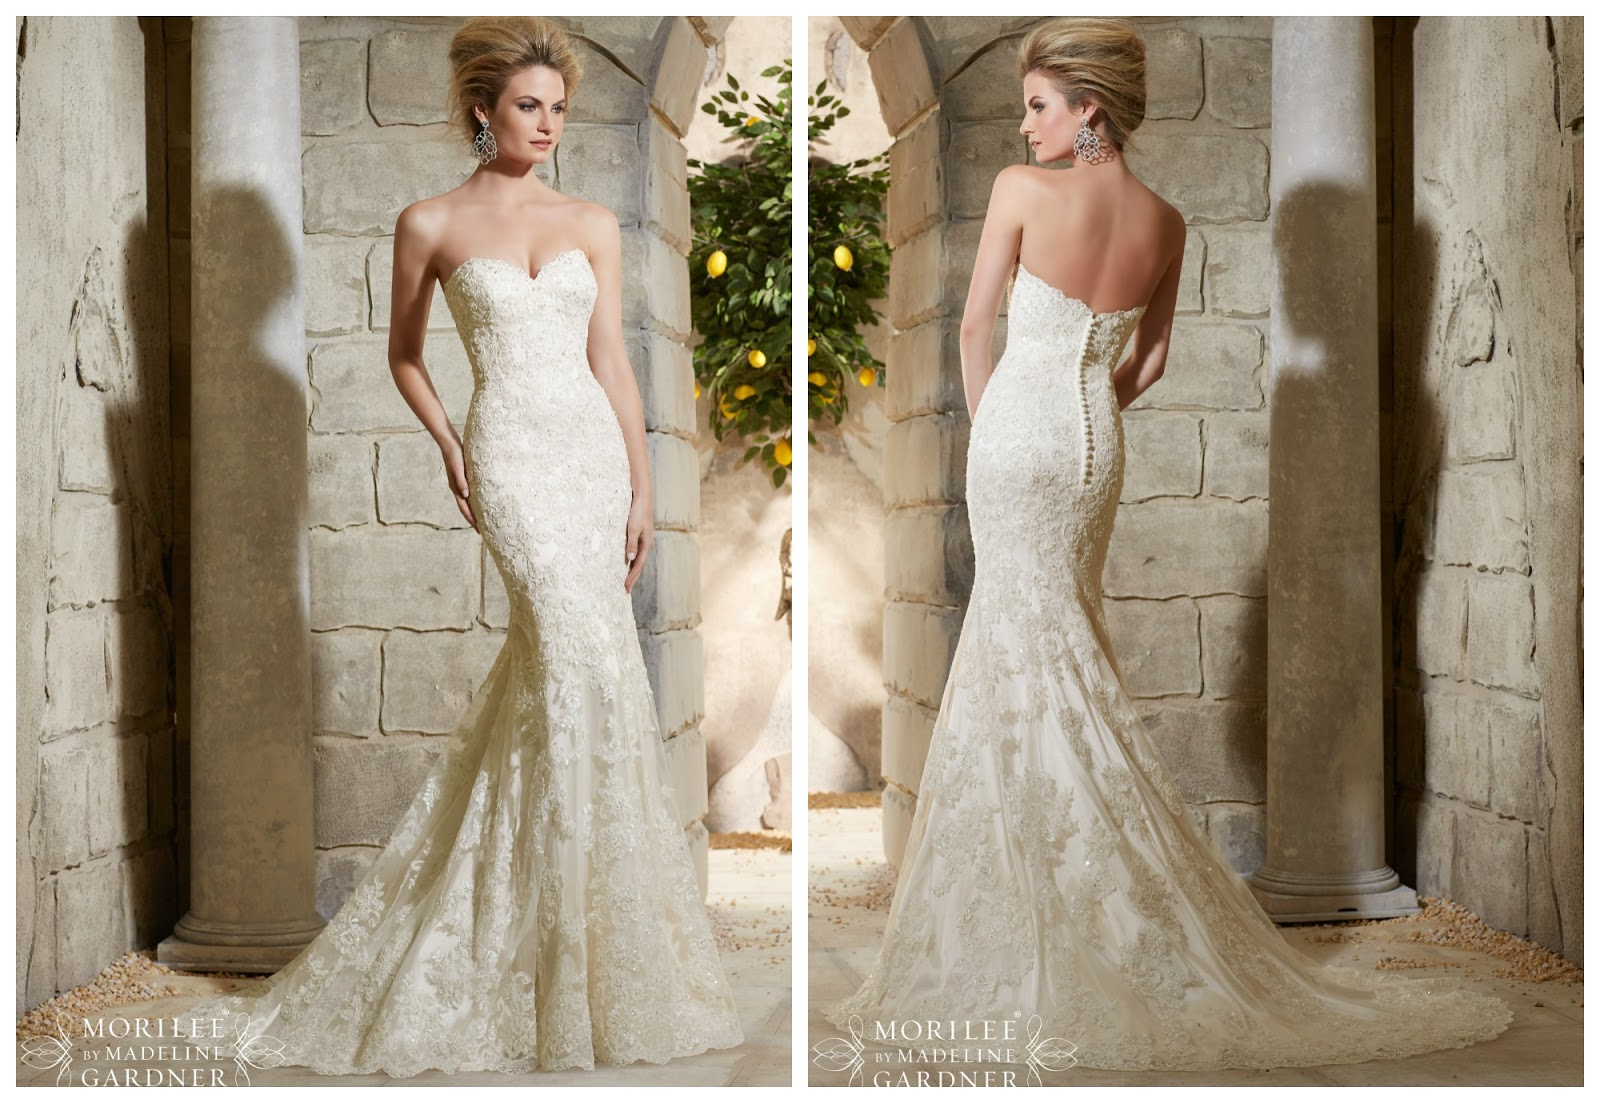 Brides of america online store december 2015 wednesday december 9 2015 ombrellifo Images